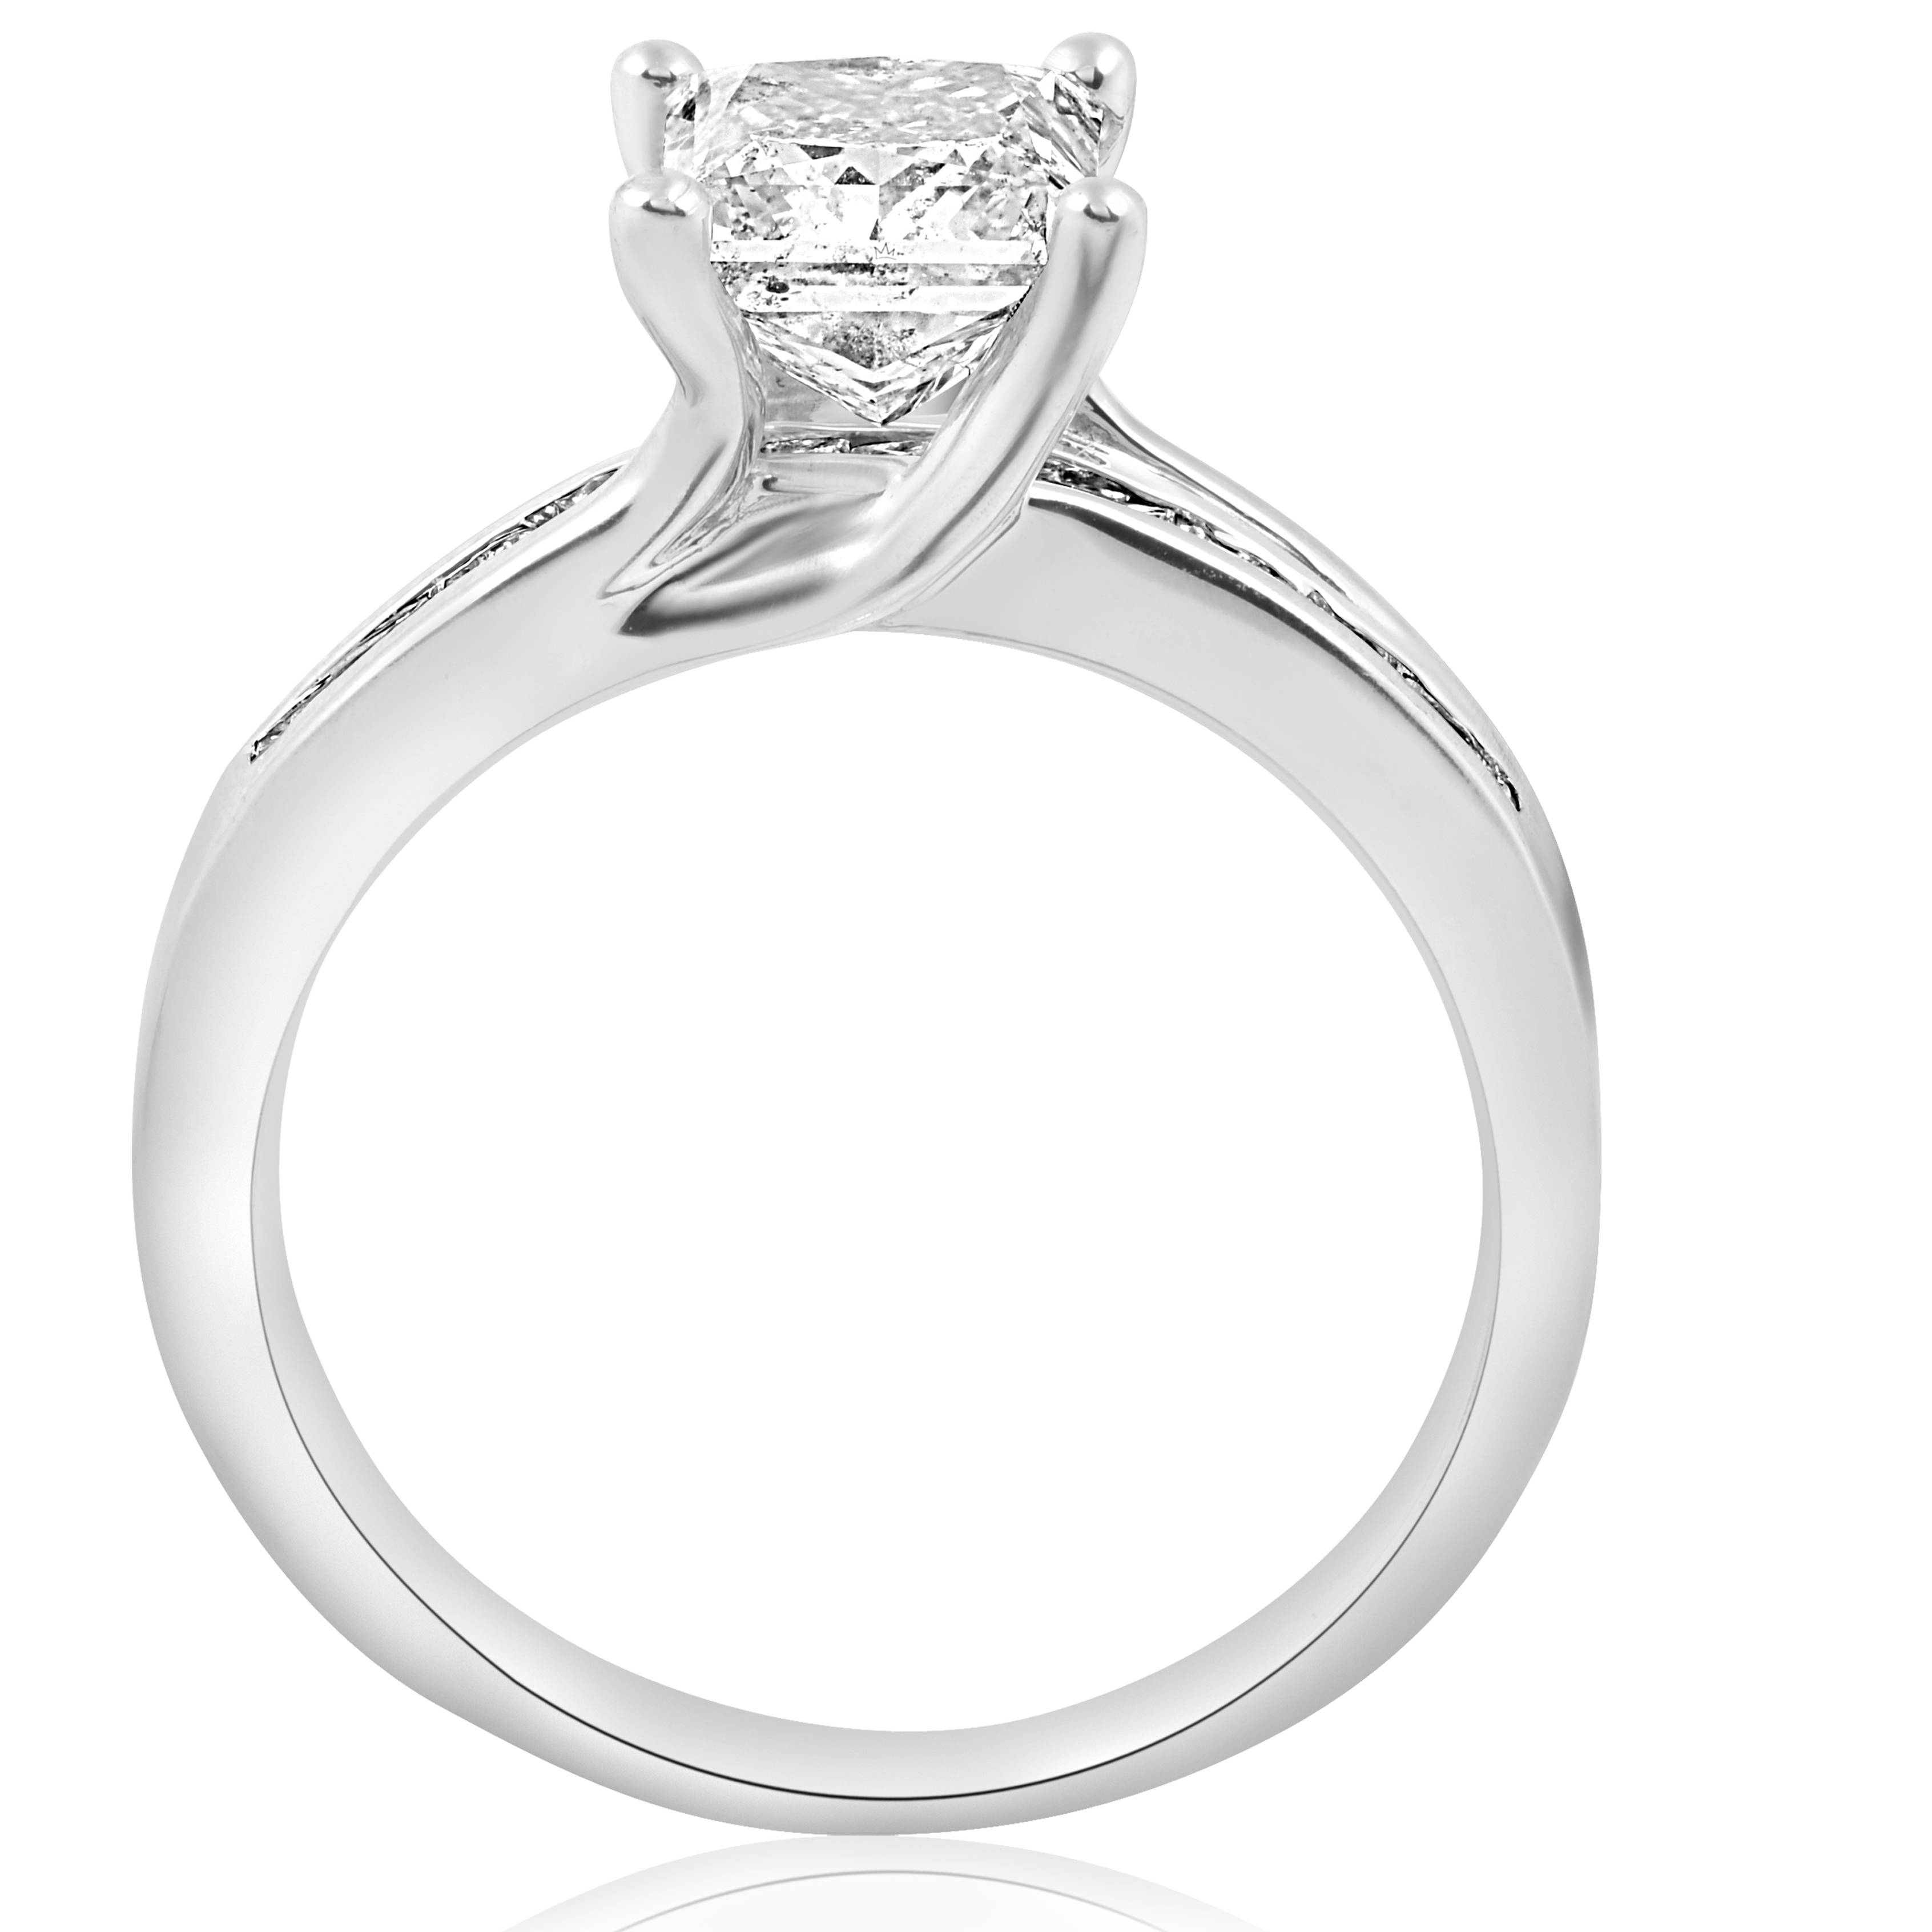 2 5 8ct princess cut enhanced engagement ring 14k